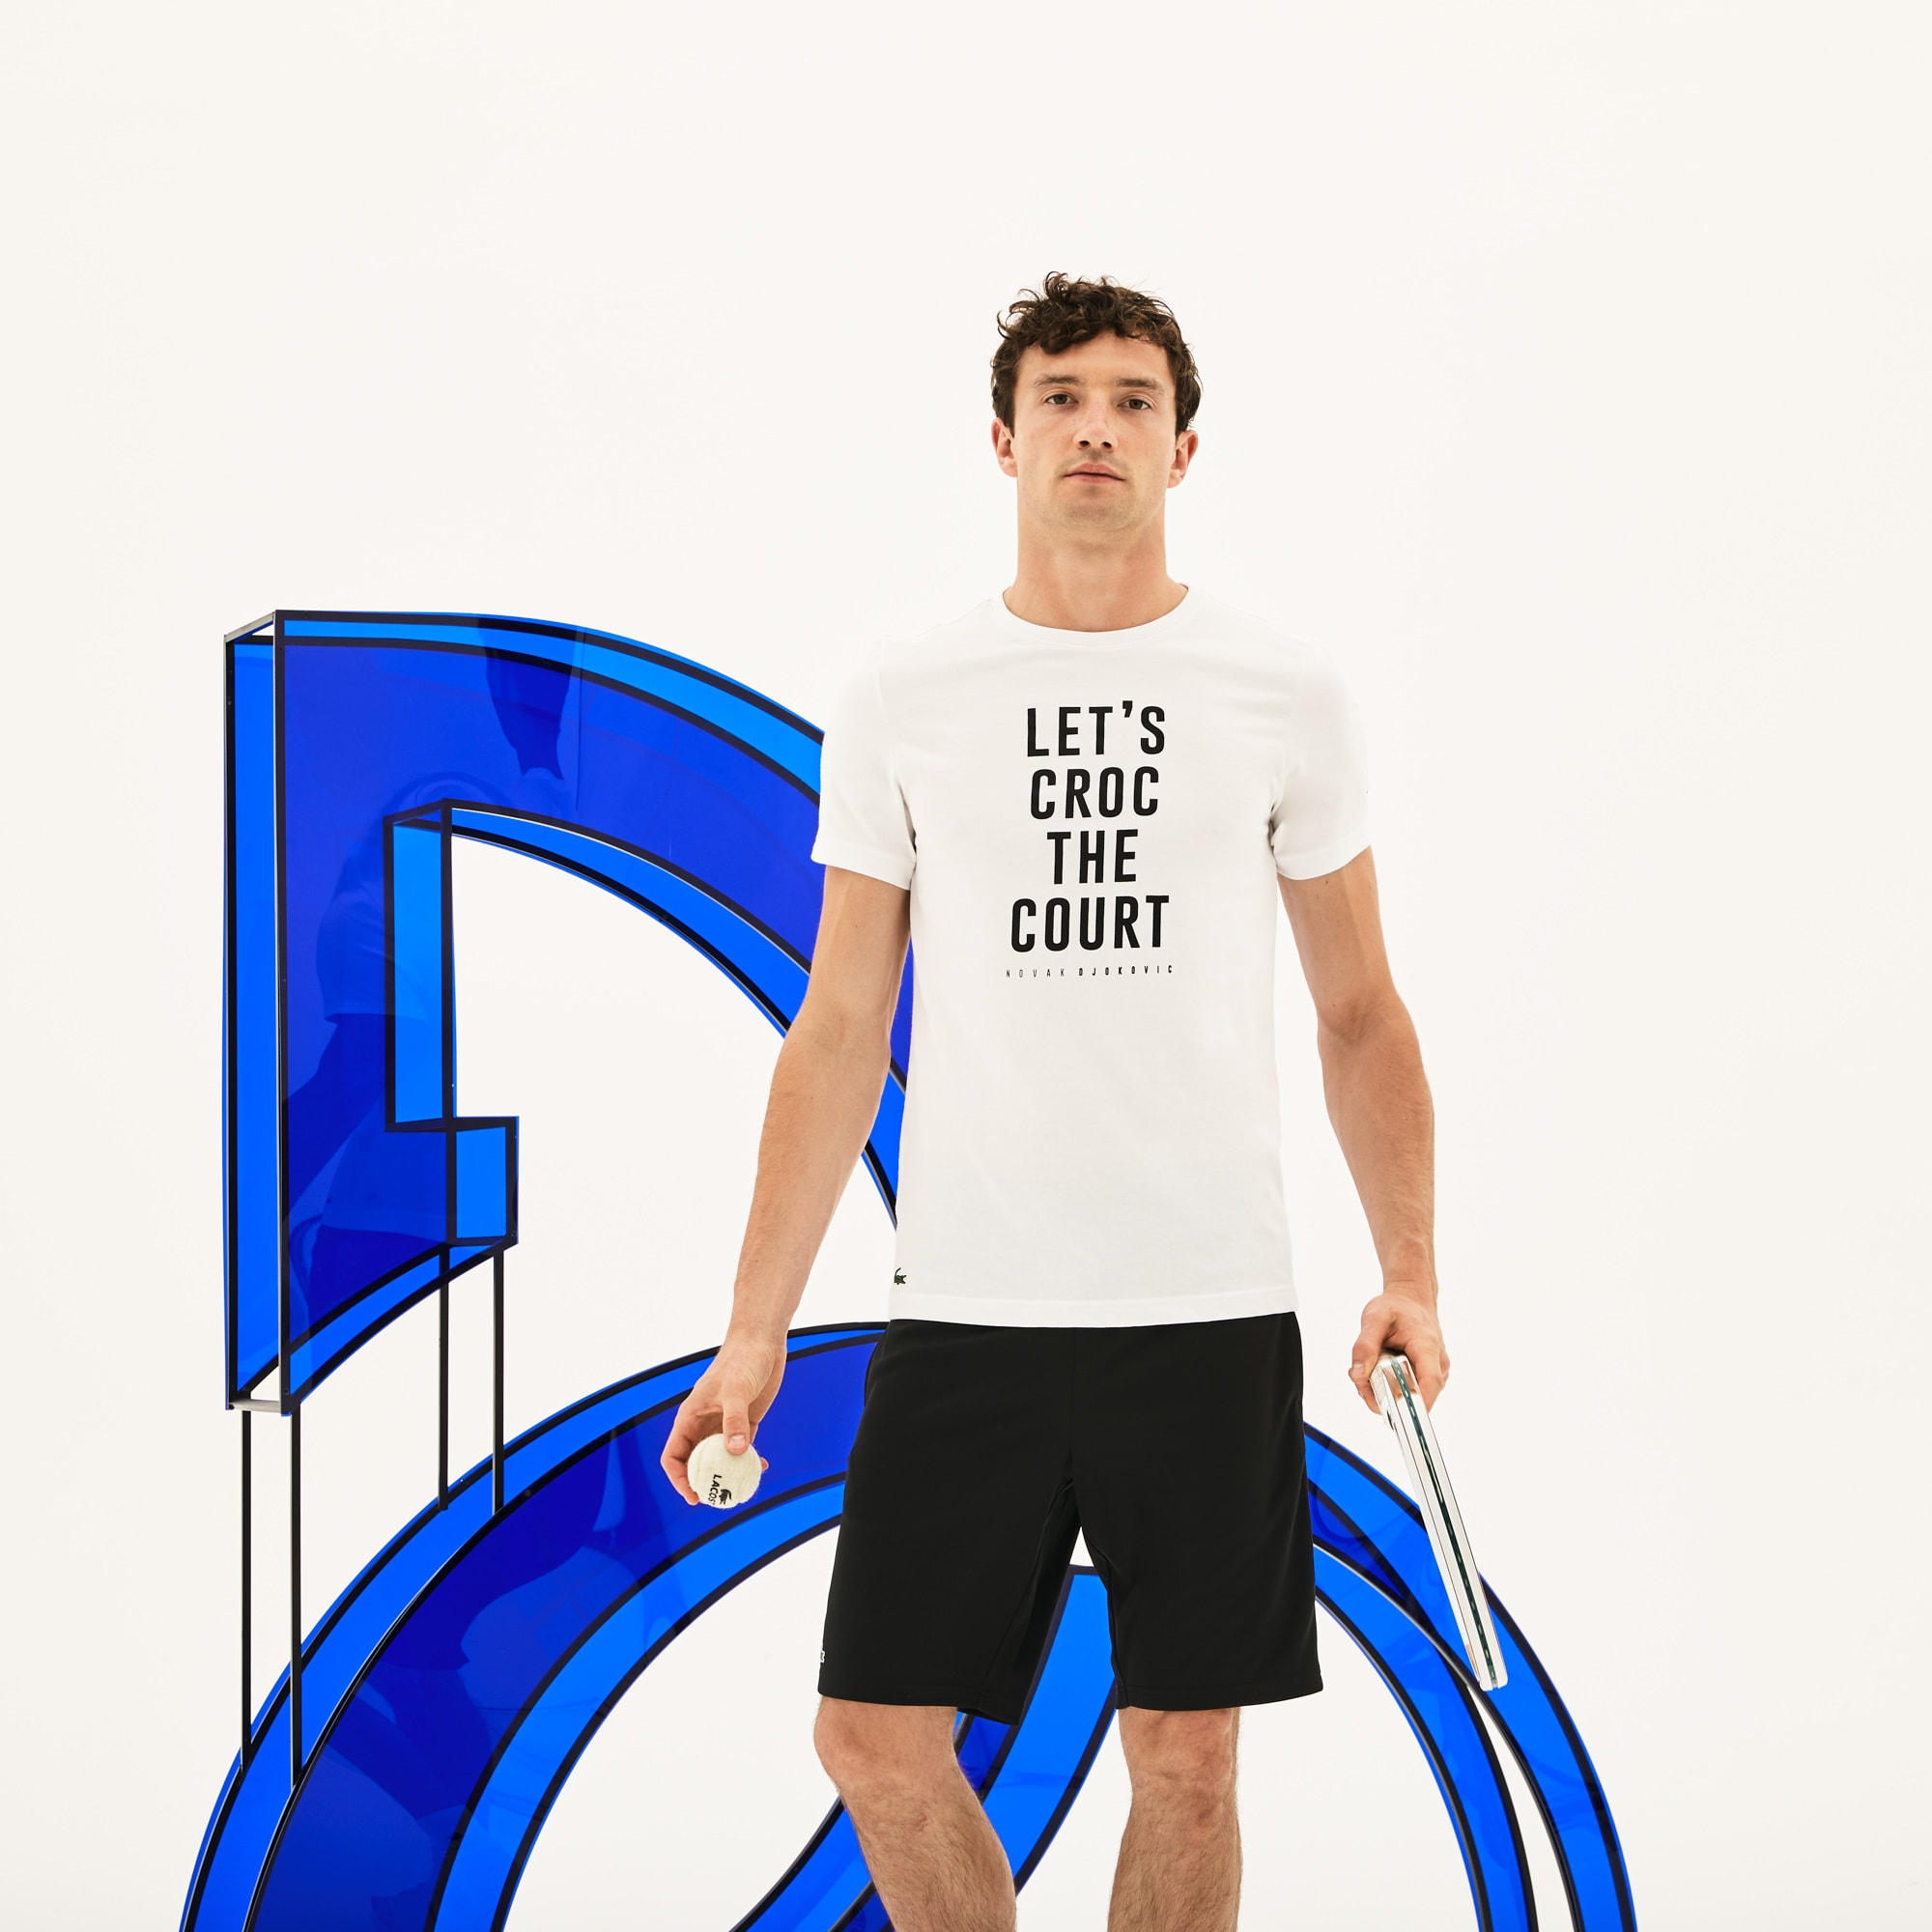 Men's SPORT Crew Neck Lettering Technical Jersey T-shirt - Lacoste x Novak Djokovic Support With Style - Off Court Collection